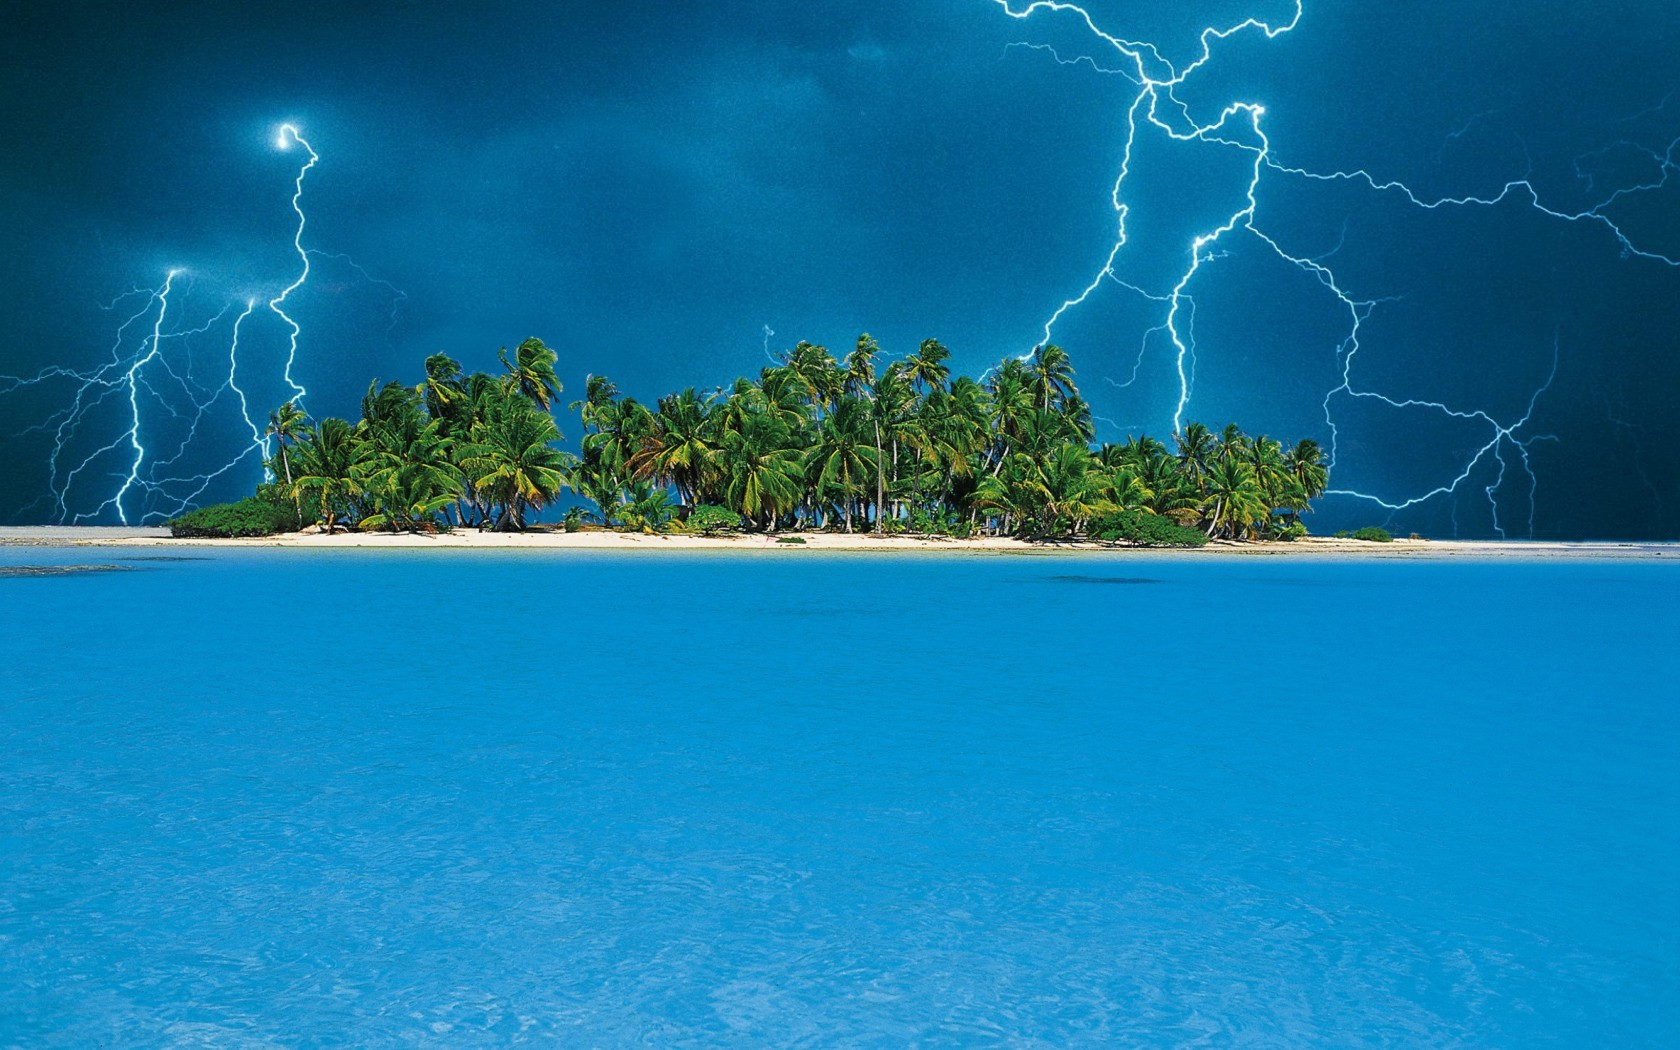 wallpapers wallpaper 17755 nature lightning storm over tropical island 1680x1050